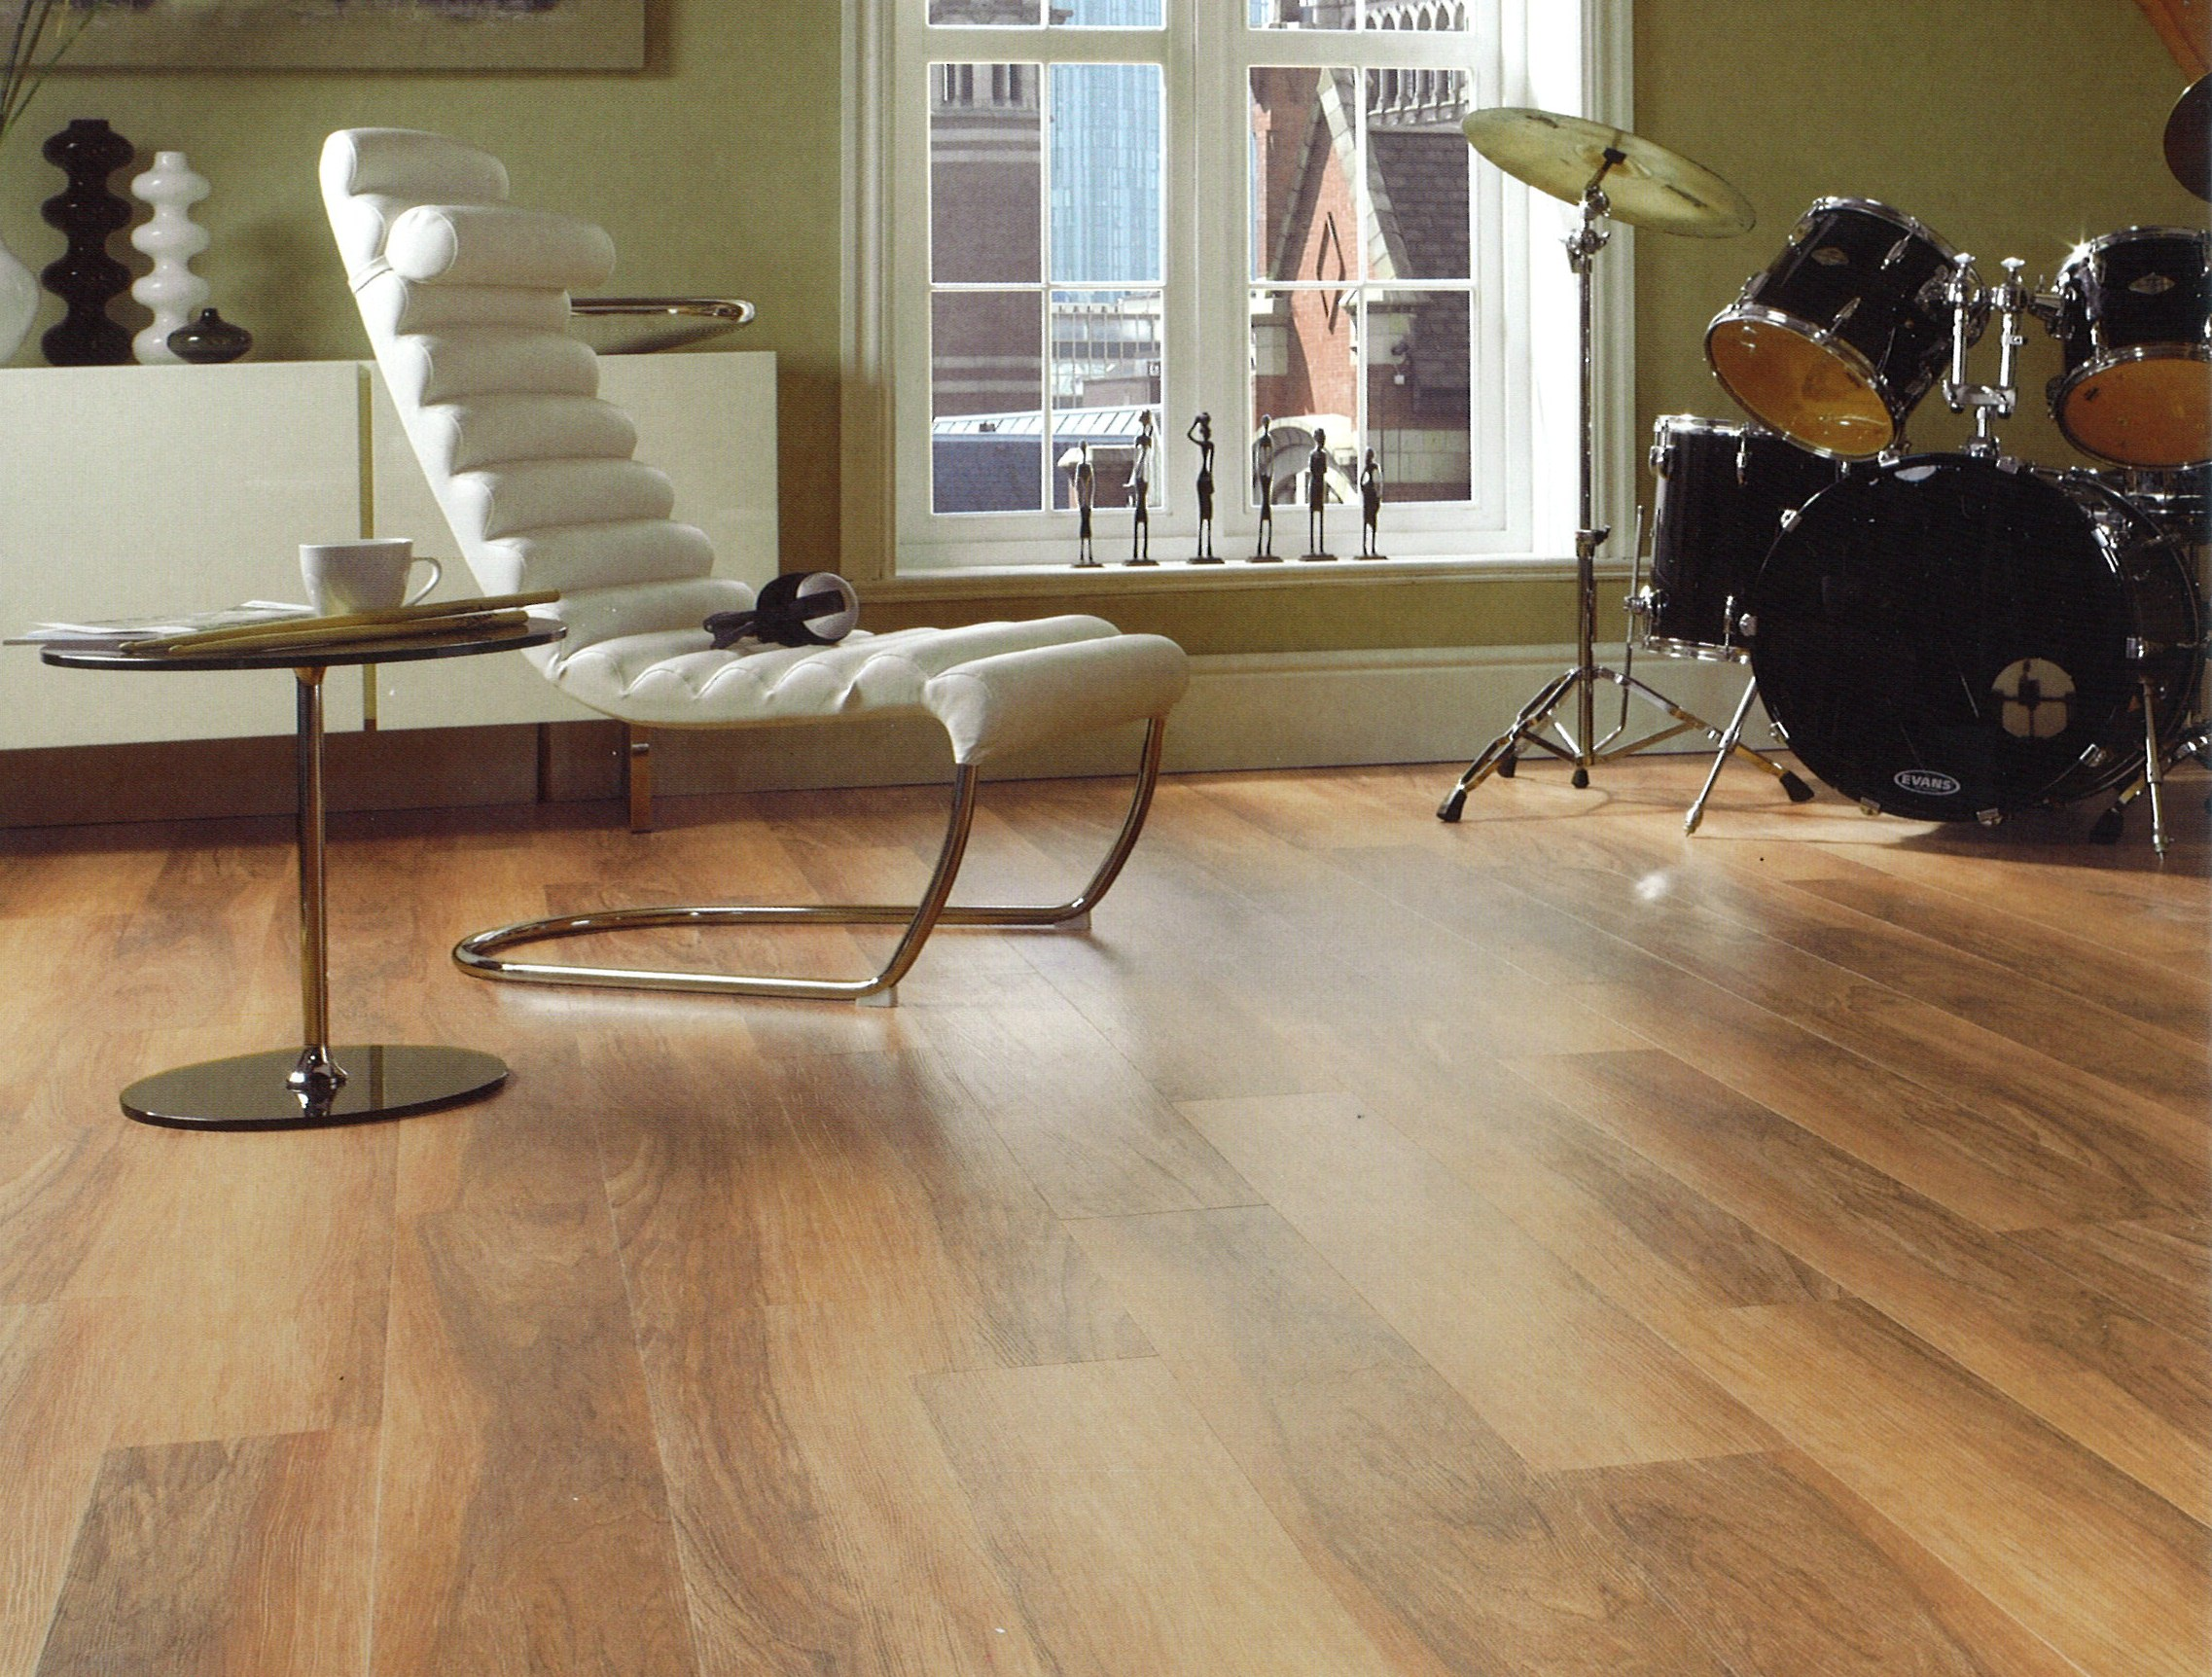 Groom Your Home Interior with Allure Vinyl Plank Floor for ...